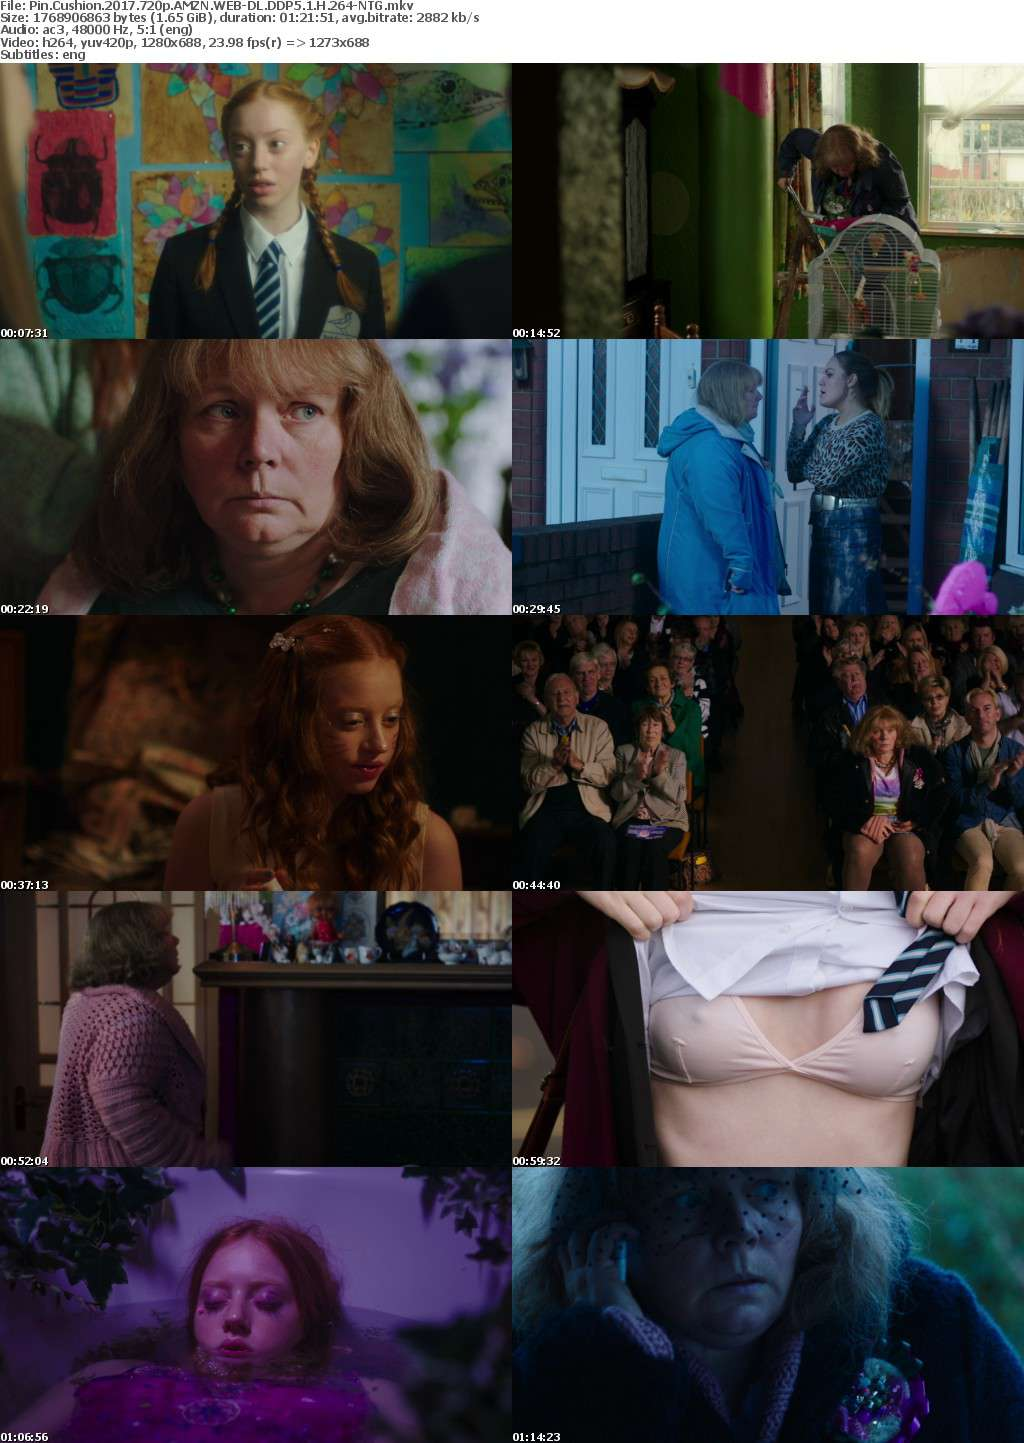 Pin Cushion (2017) 720p AMZN WEB-DL DDP5.1 H264-NTG